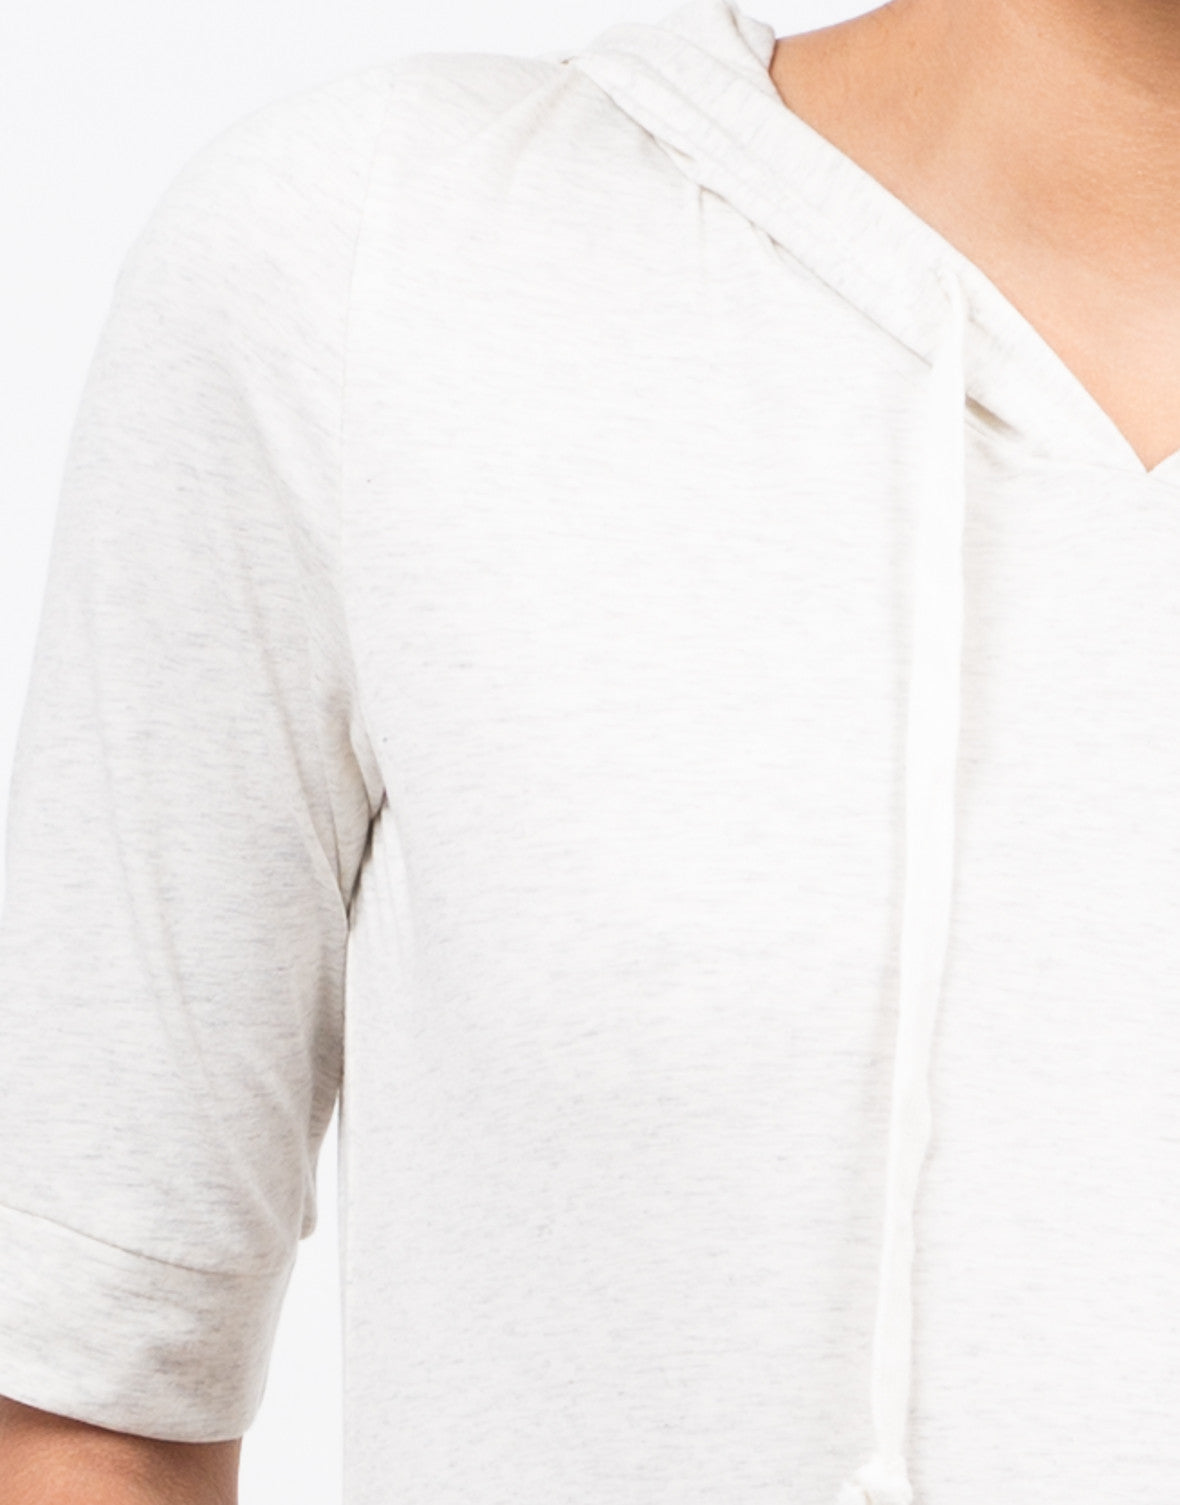 Detail of Hooded Tee Dress